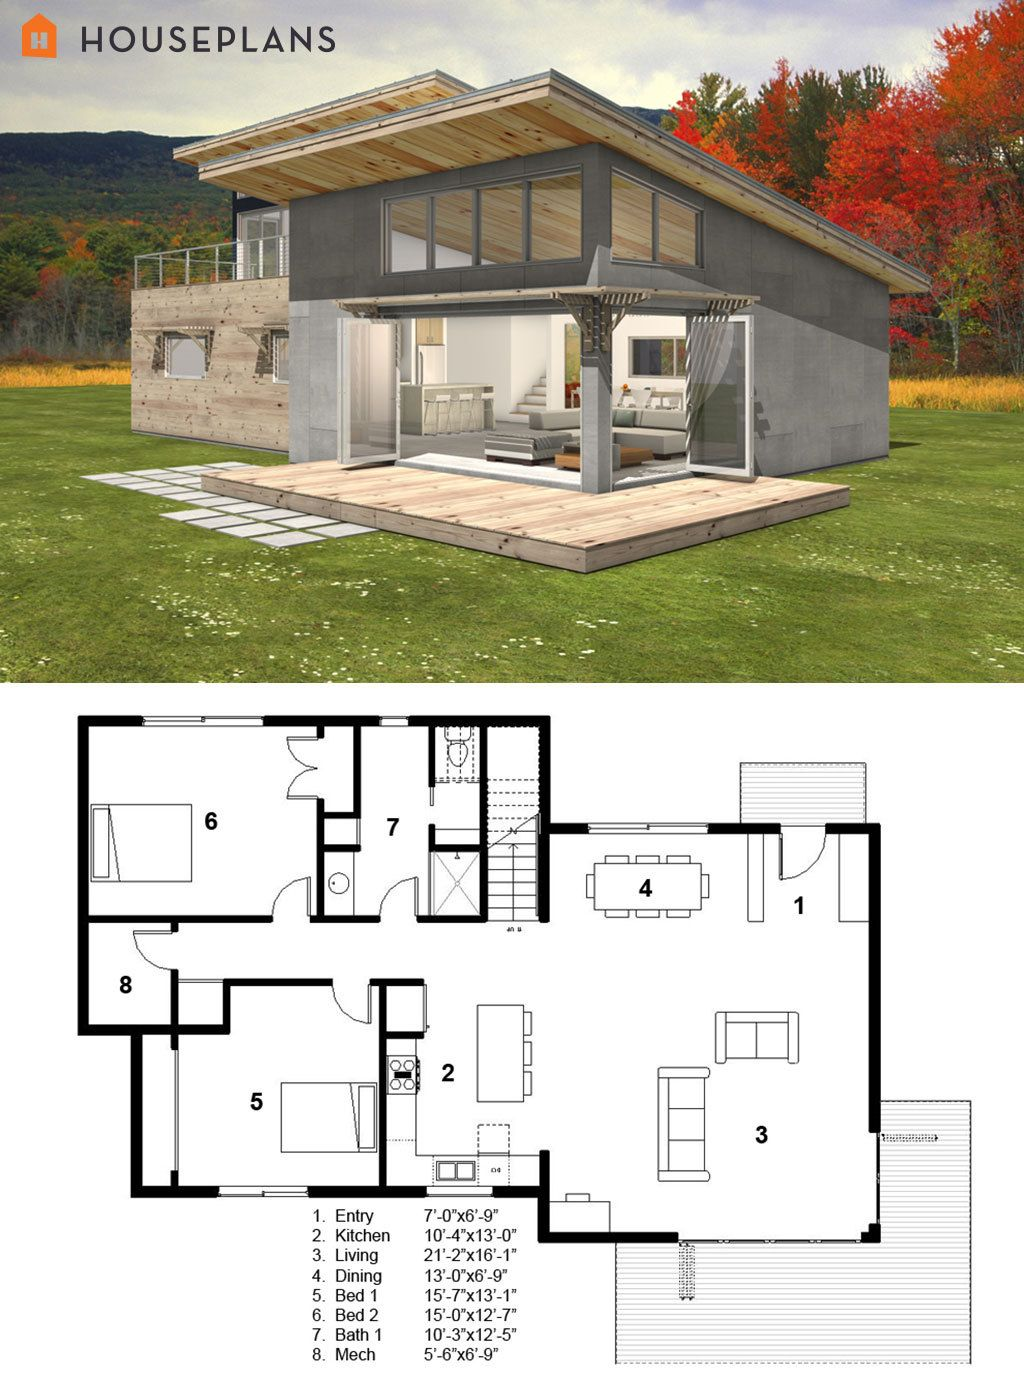 Modern style house plan 3 beds baths 2115 sq ft for Simple modern house blueprints